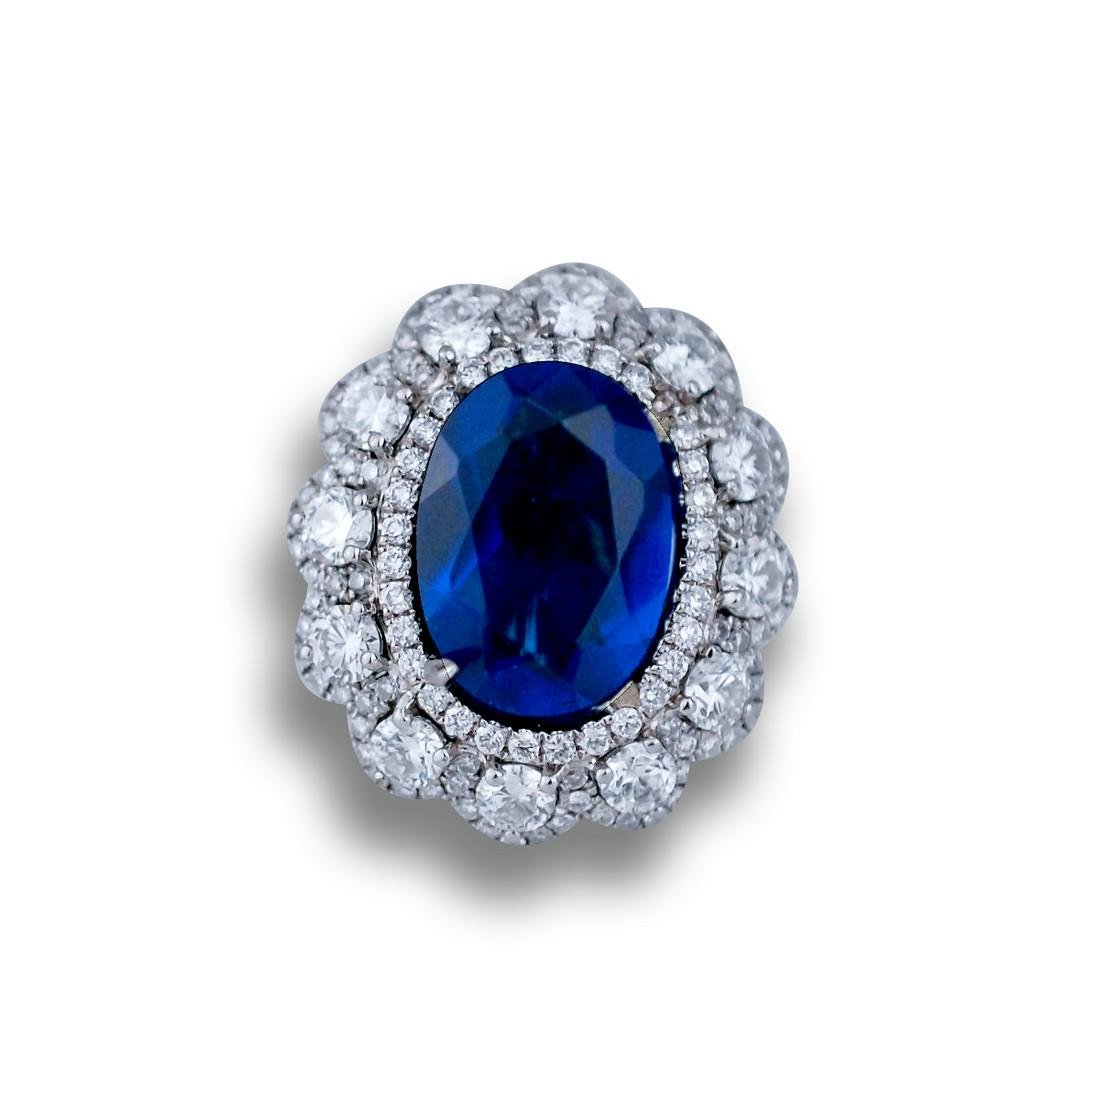 Stunning 4 Ct. Diamond Ring With Blue Sapphire set in a - 2